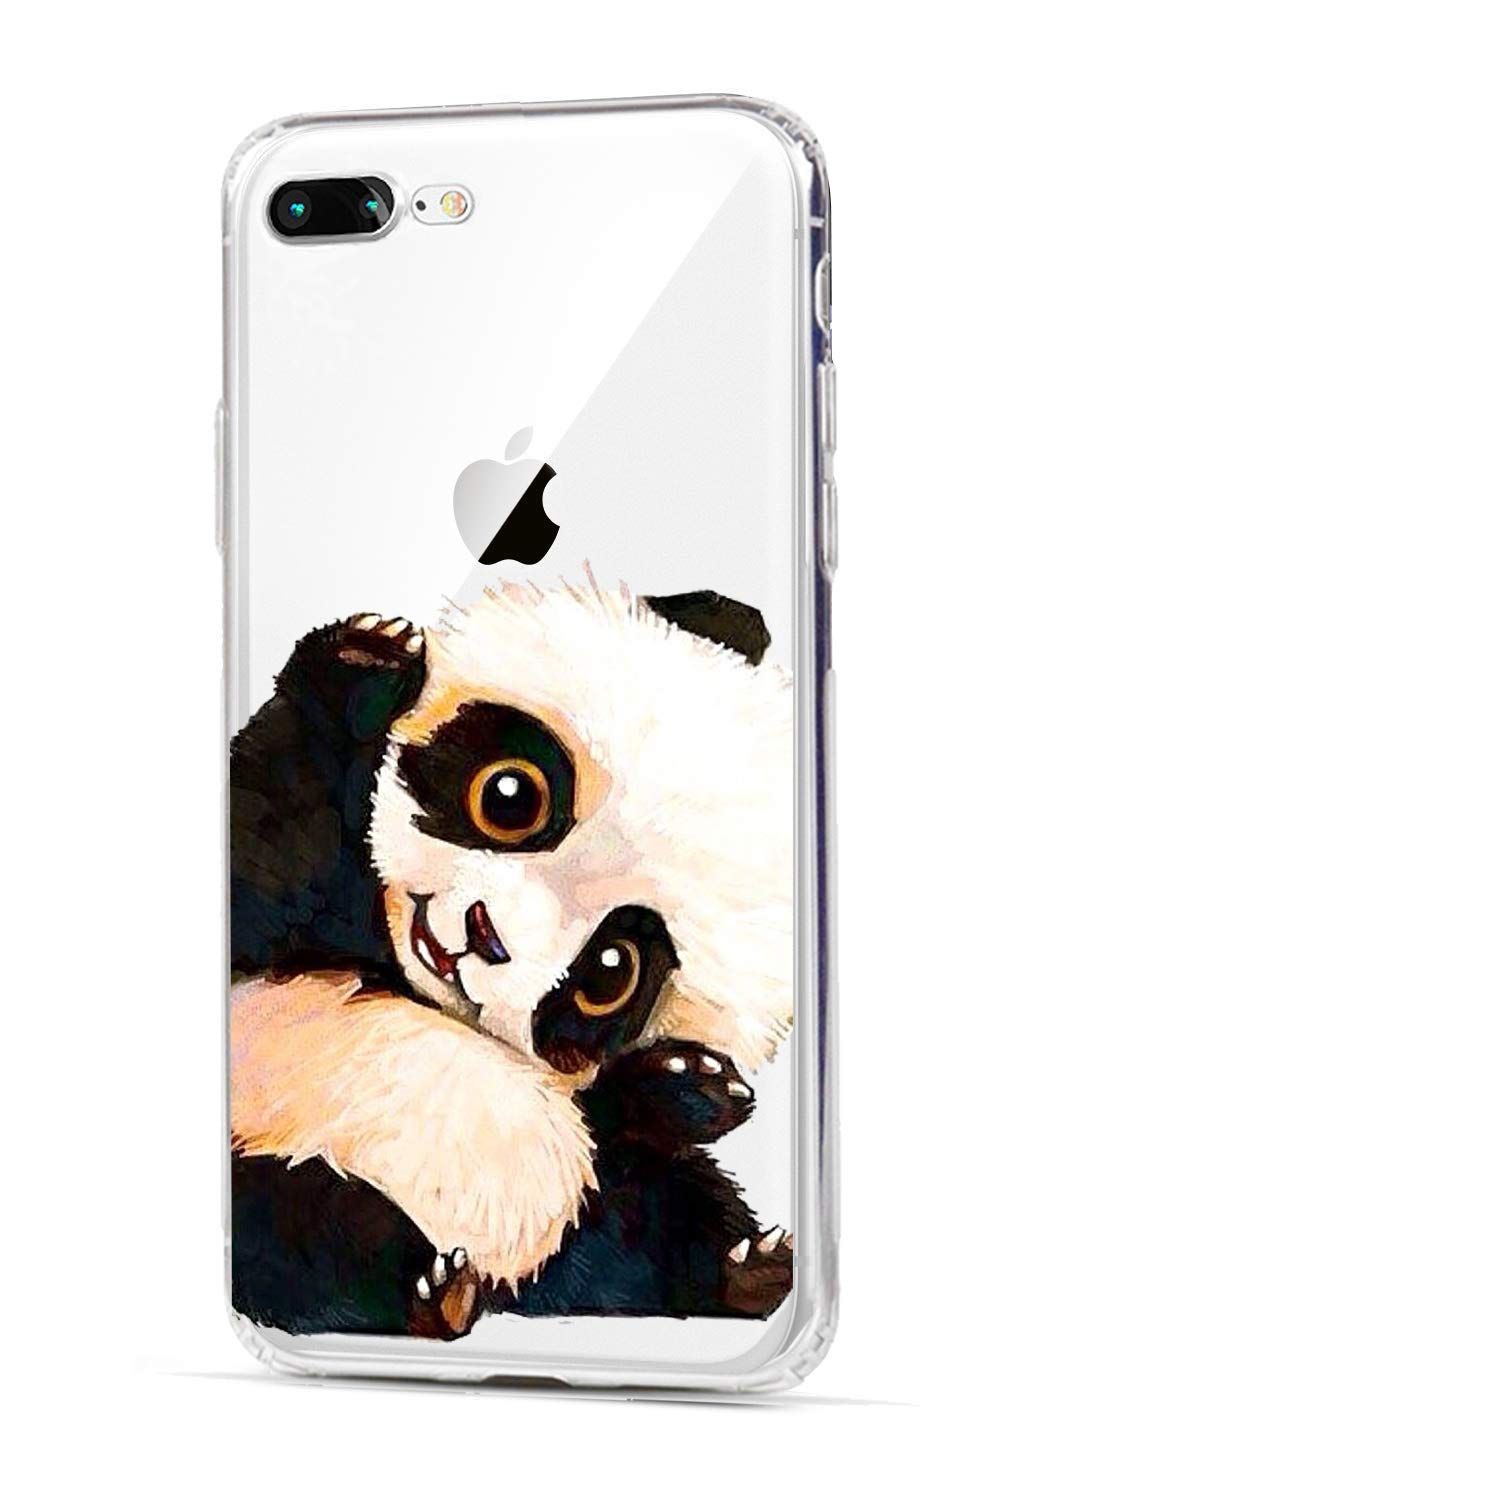 HUIYCUU Phone case Compatible with iPhone 8 Plus for iPhone 7 Plus , Cute Smile Panda Animal Soft Cover Funny Pattern Clear Novelty Bumper Back Case ...